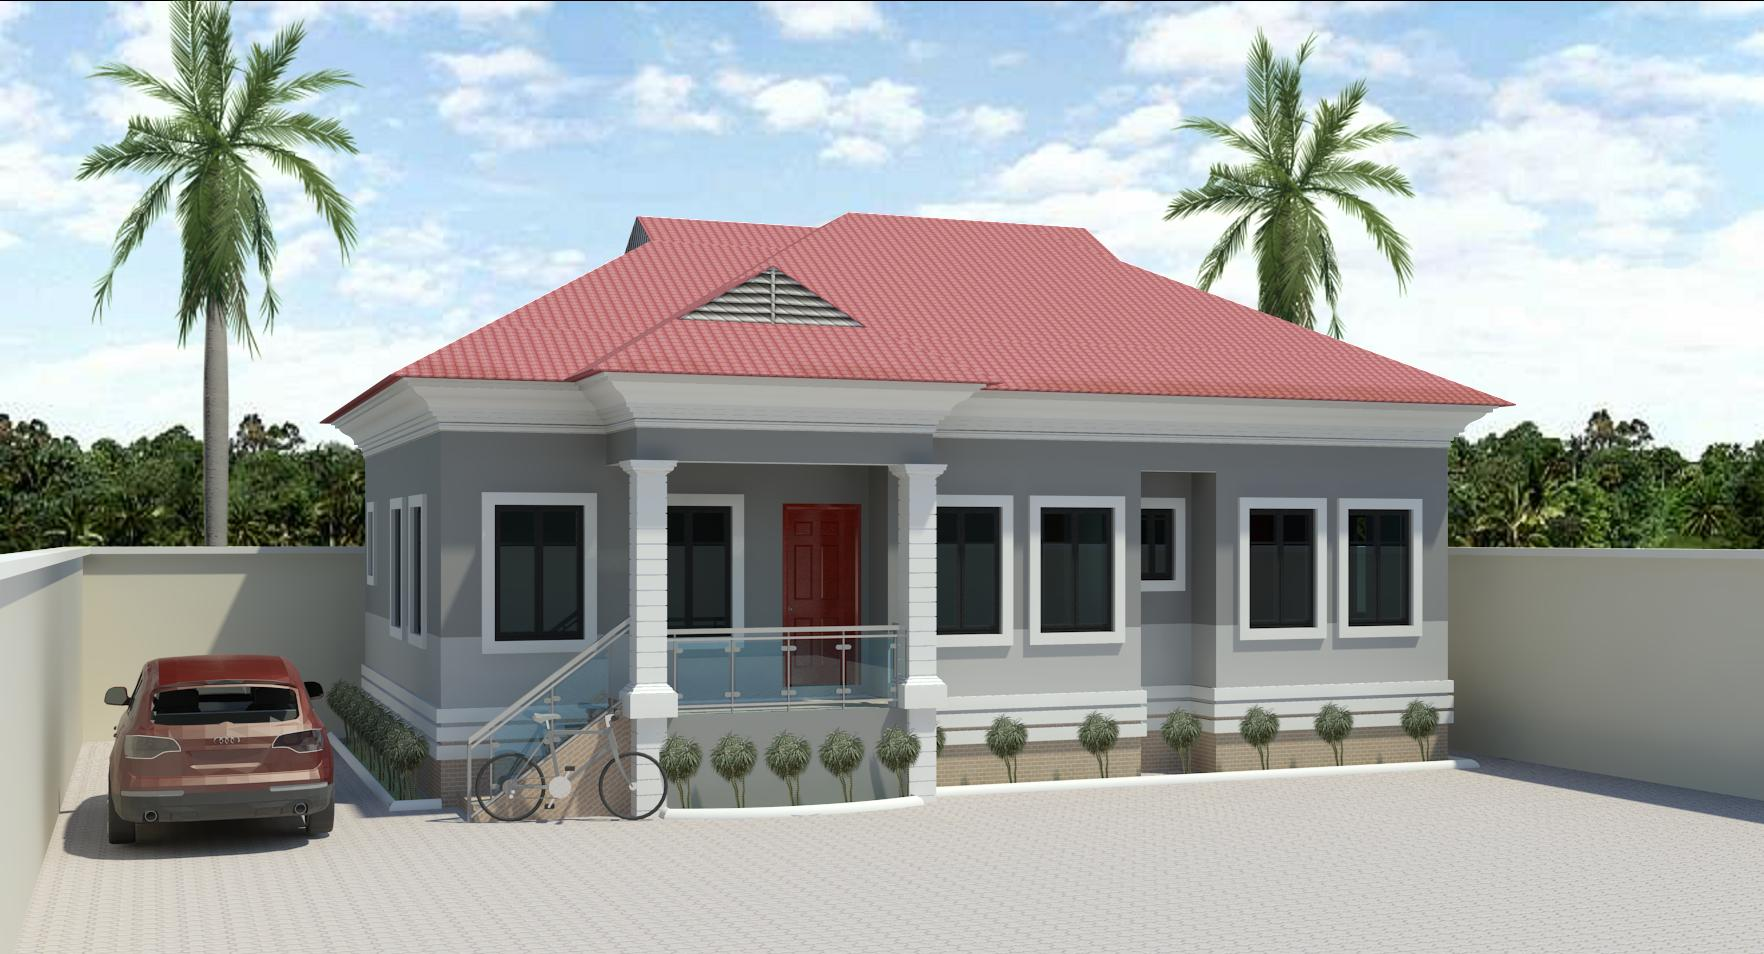 3bedroom bungalow designs in nigeria joy studio design for New build 2 bedroom house